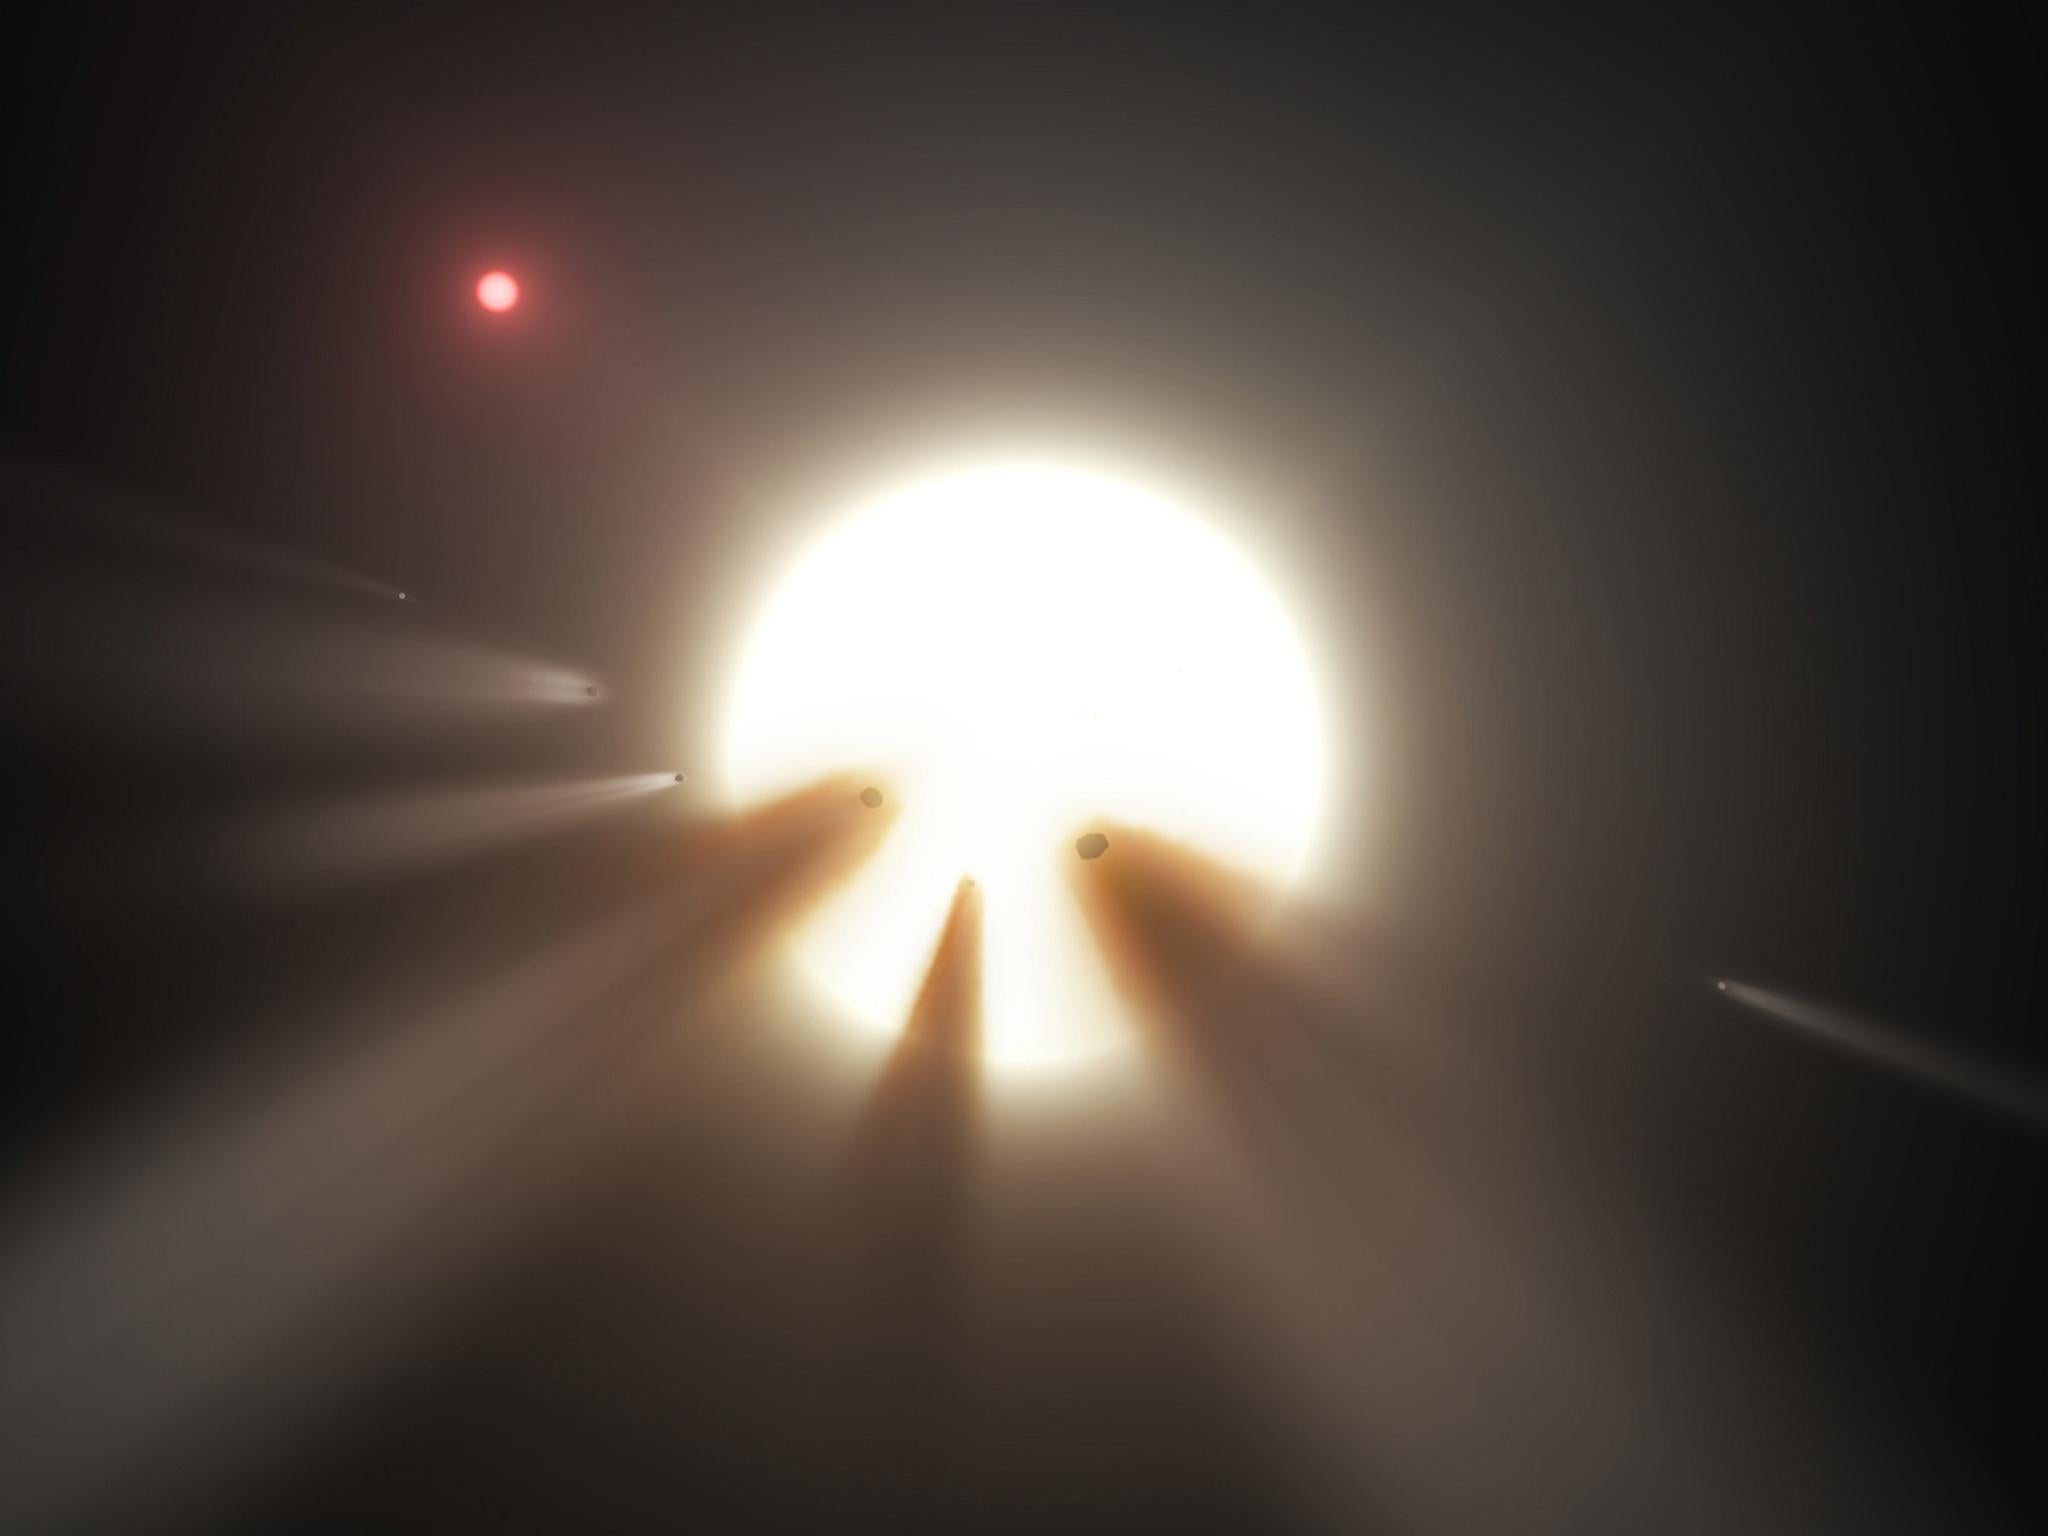 Huge investigation reveals truth about the 'alien megastructure' star